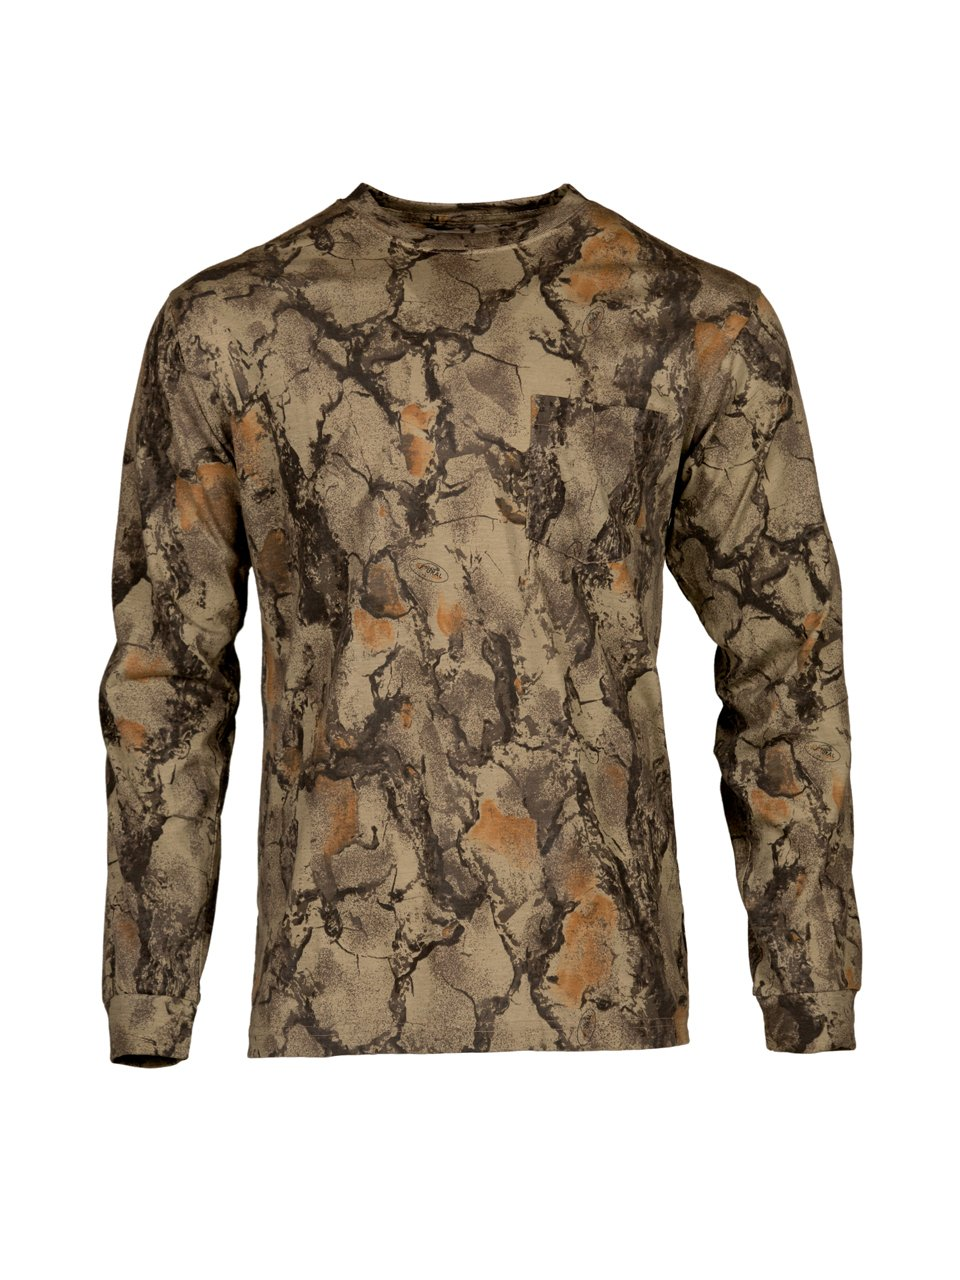 b7b277ea89b3e COTTON/POLY T-SHIRT: Our Natural Gear camo shirt is made out of a  cotton/poly blend material that is lightweight and breathable.